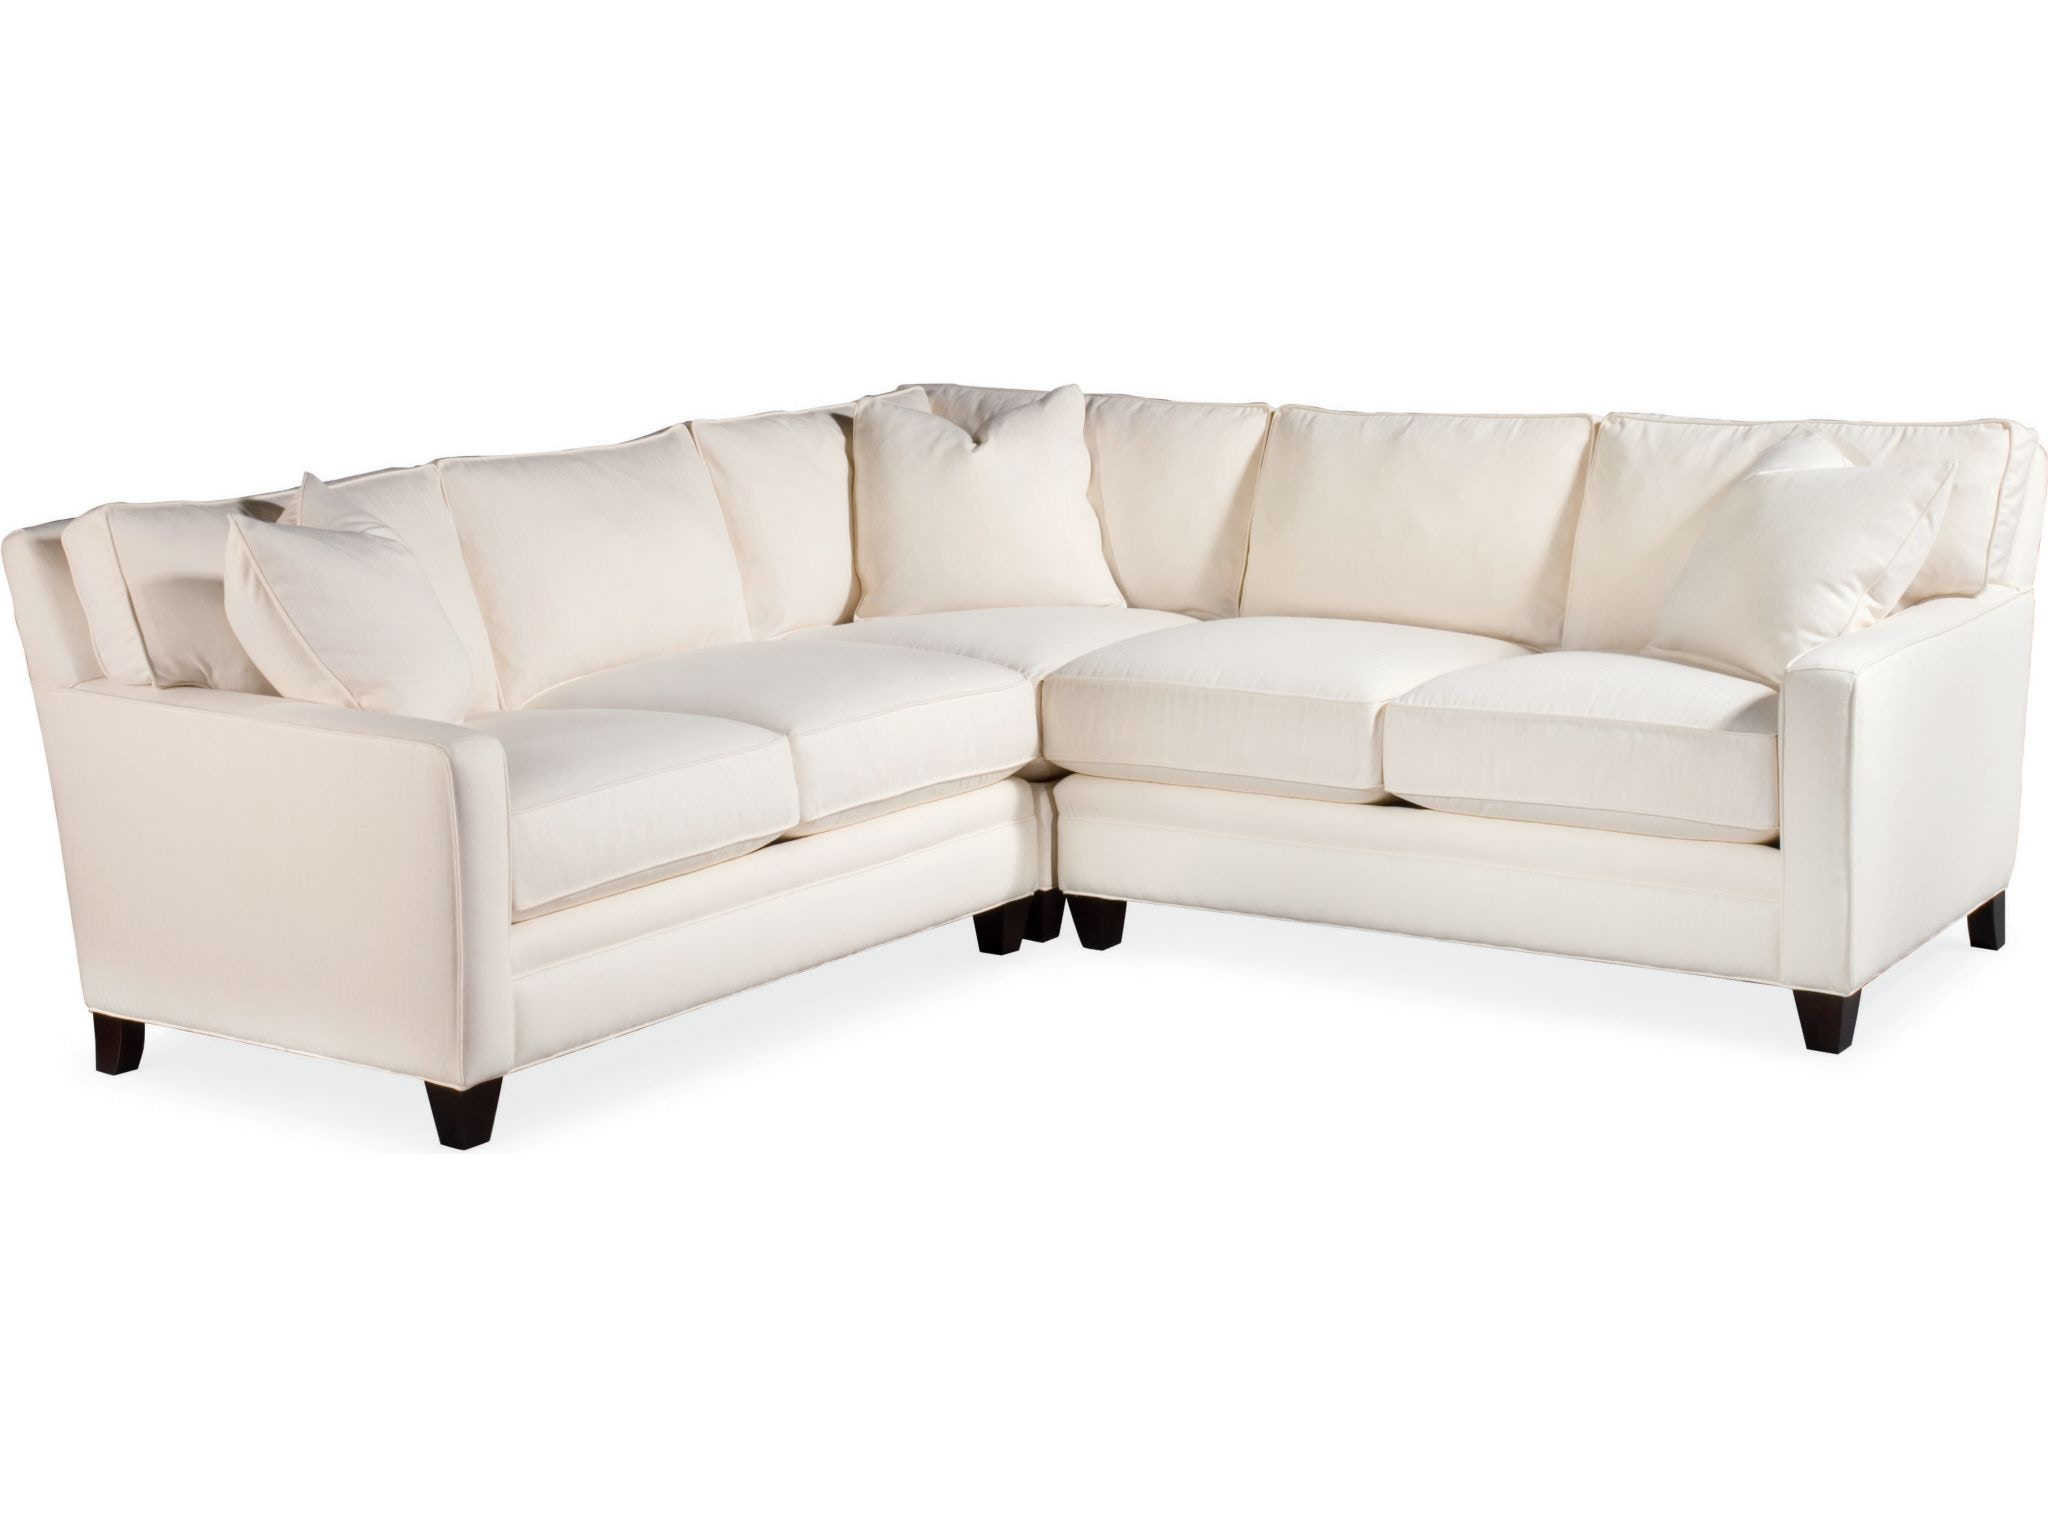 Thomasville Living Room Mercer Sectional 1803 SECT   Kamin Furniture    Victoria, Texas